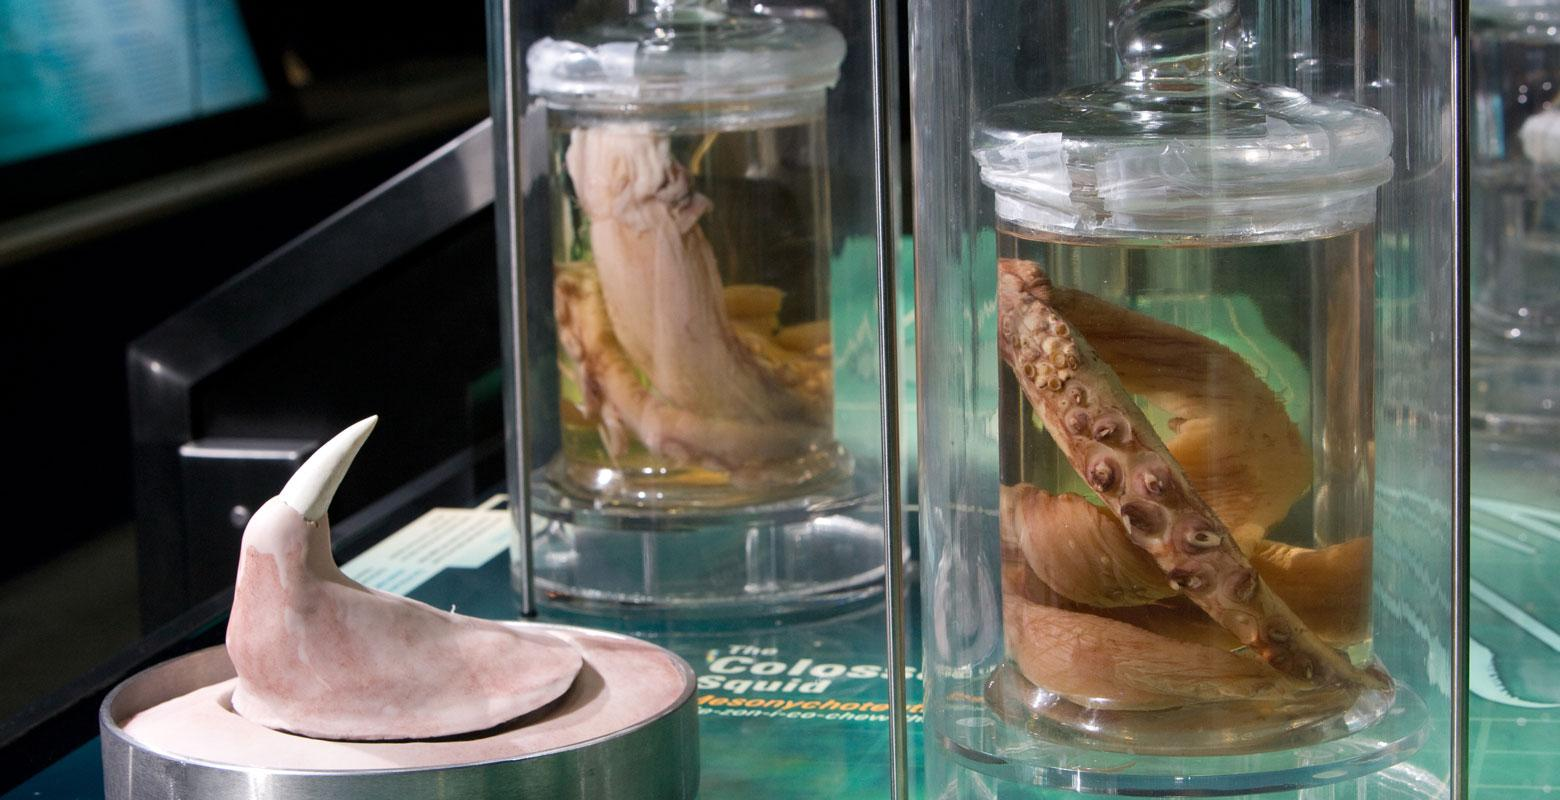 Squid hooks and other parts of the squid in jars